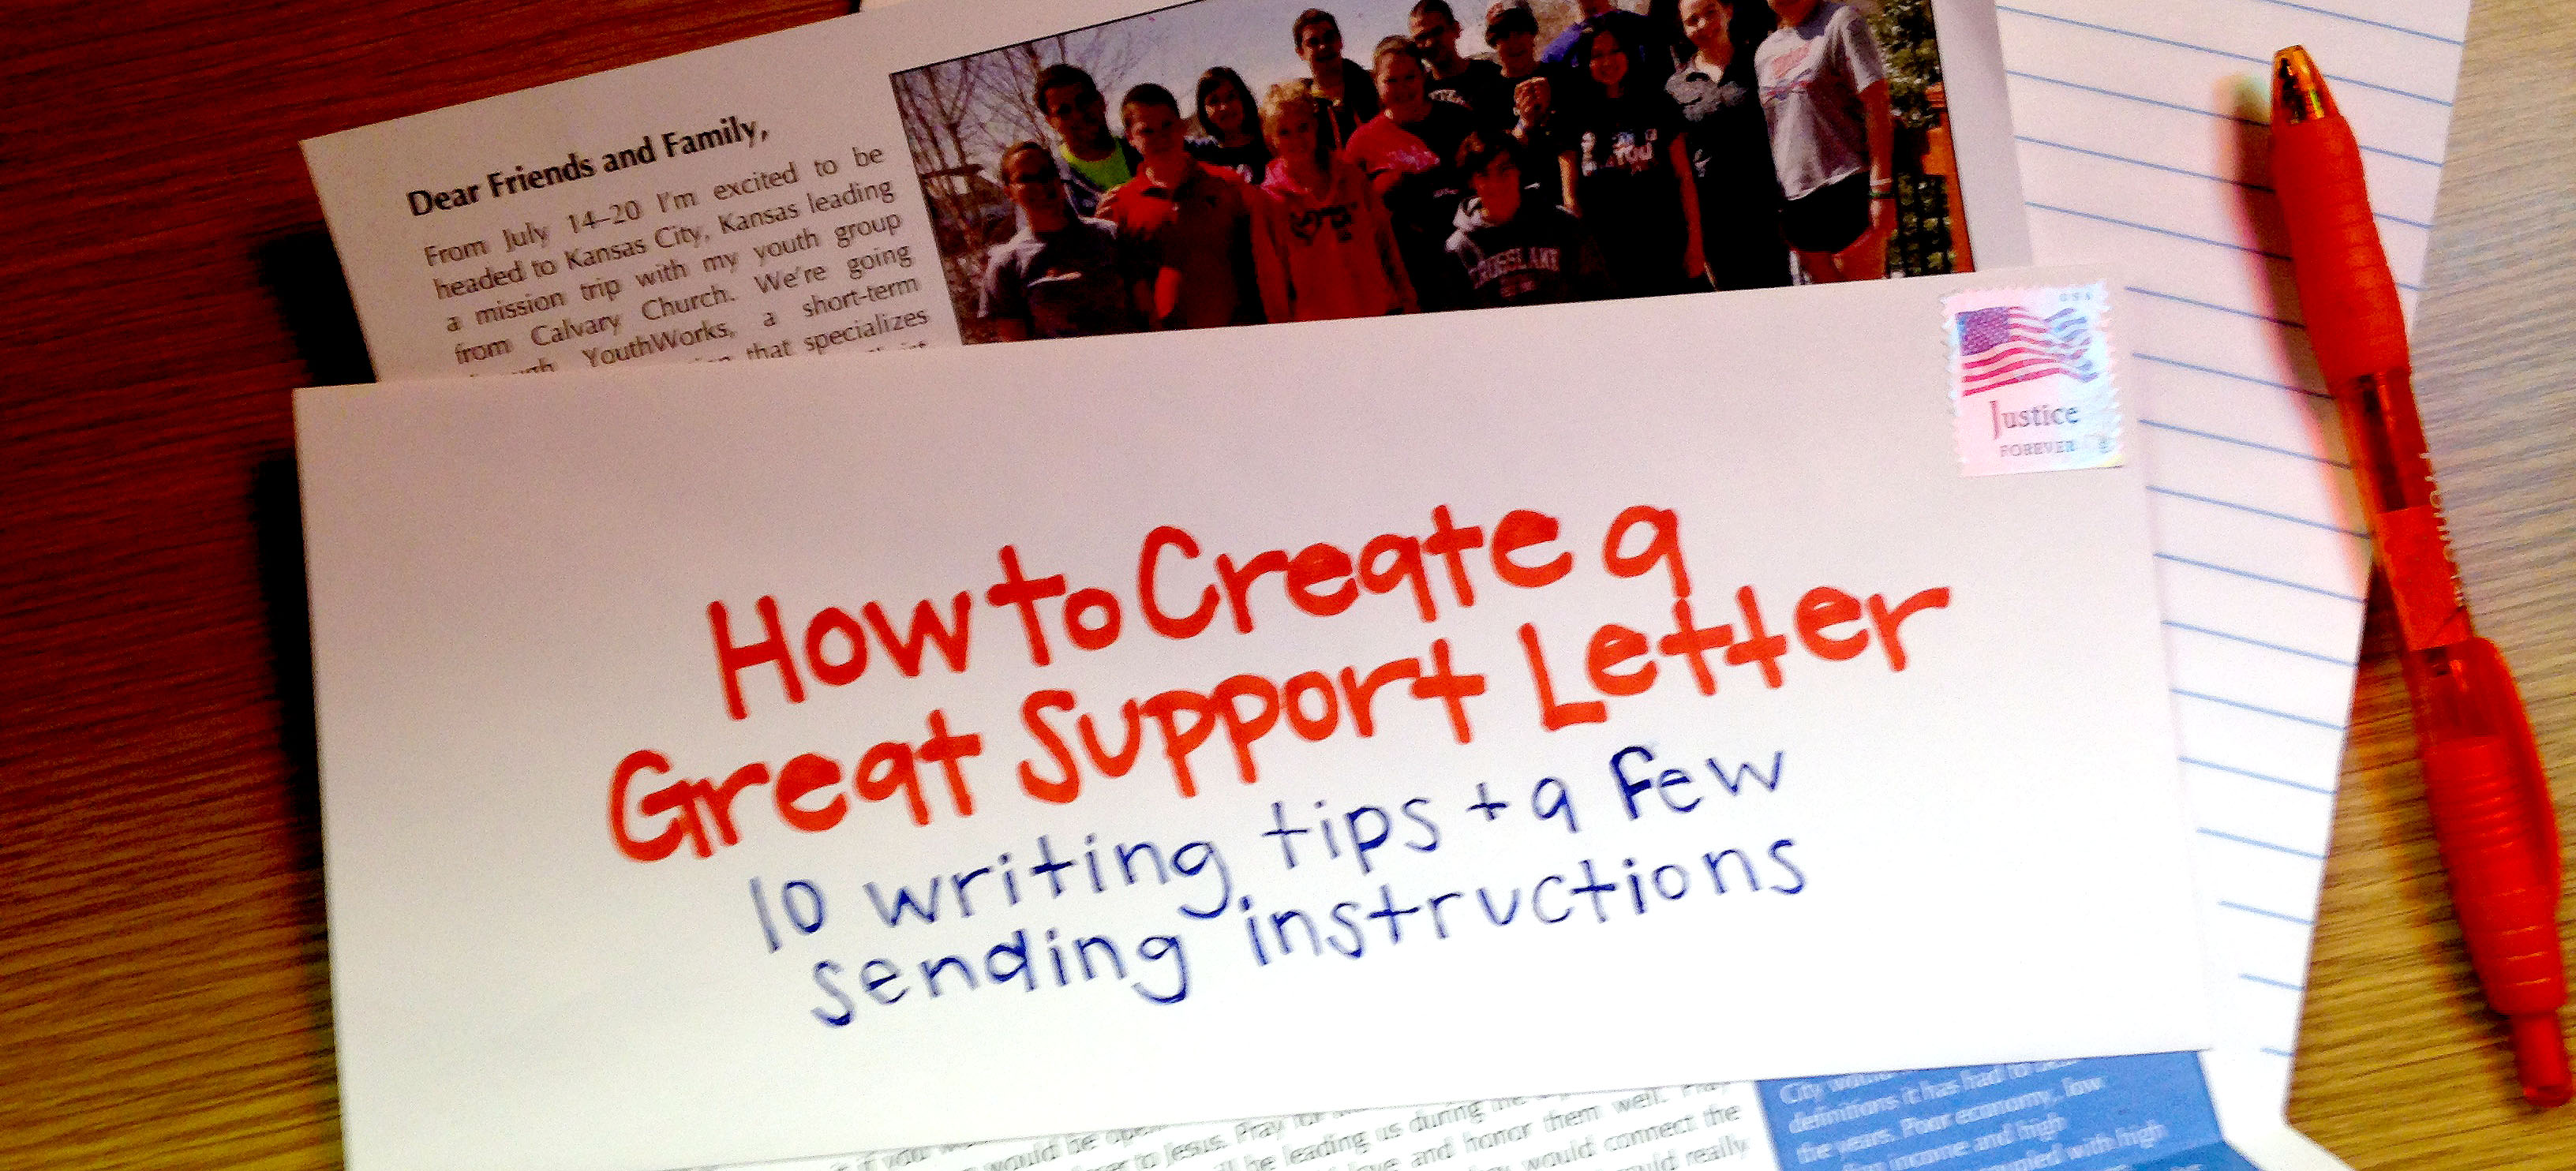 Much of those donations co. How To Create A Great Mission Trip Support Letter Youthworks